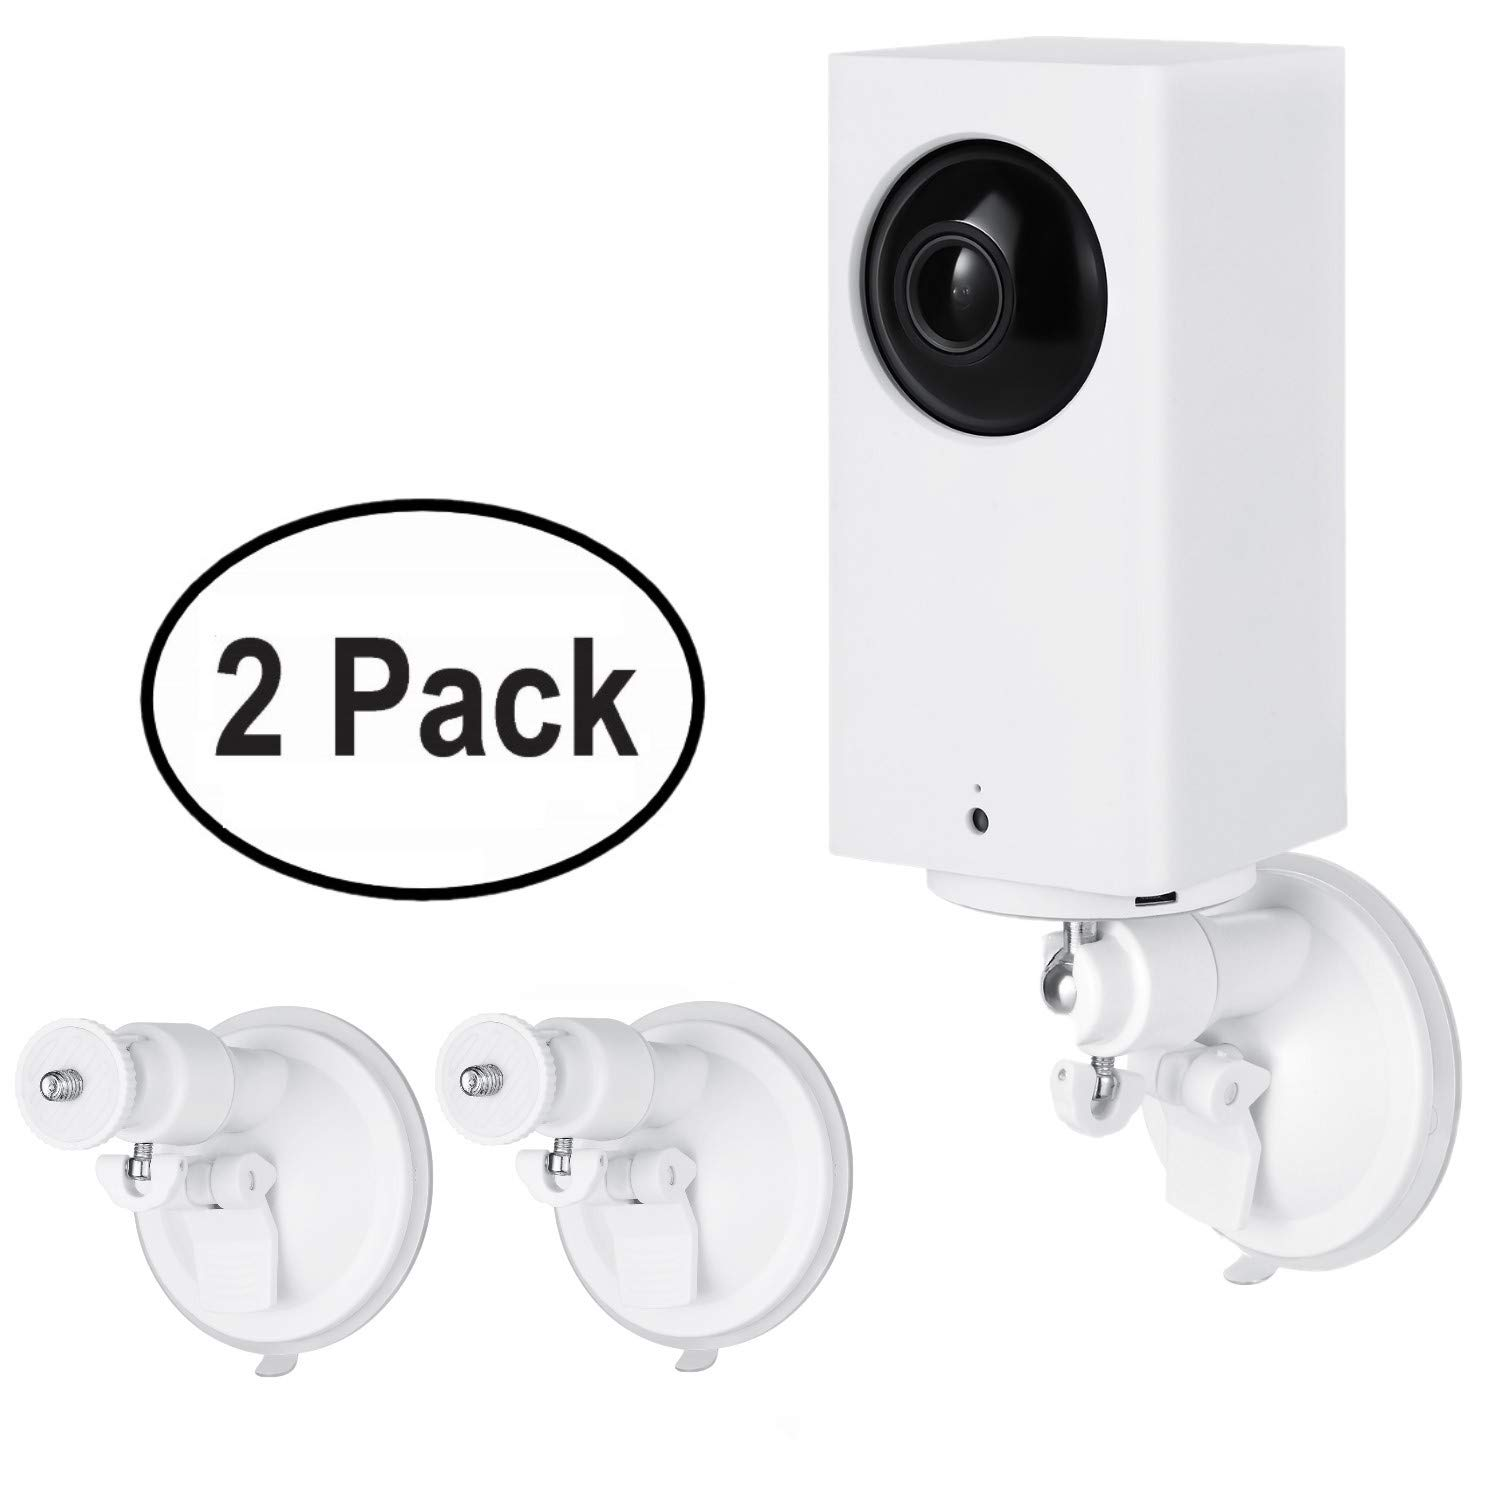 Wasserstein Versatile Suction Cup Mount with Universal Screw Compatible with Wyze Cam Pan - Extra Flexibility for Your Wyze Cam Pan (2-Pack, White)